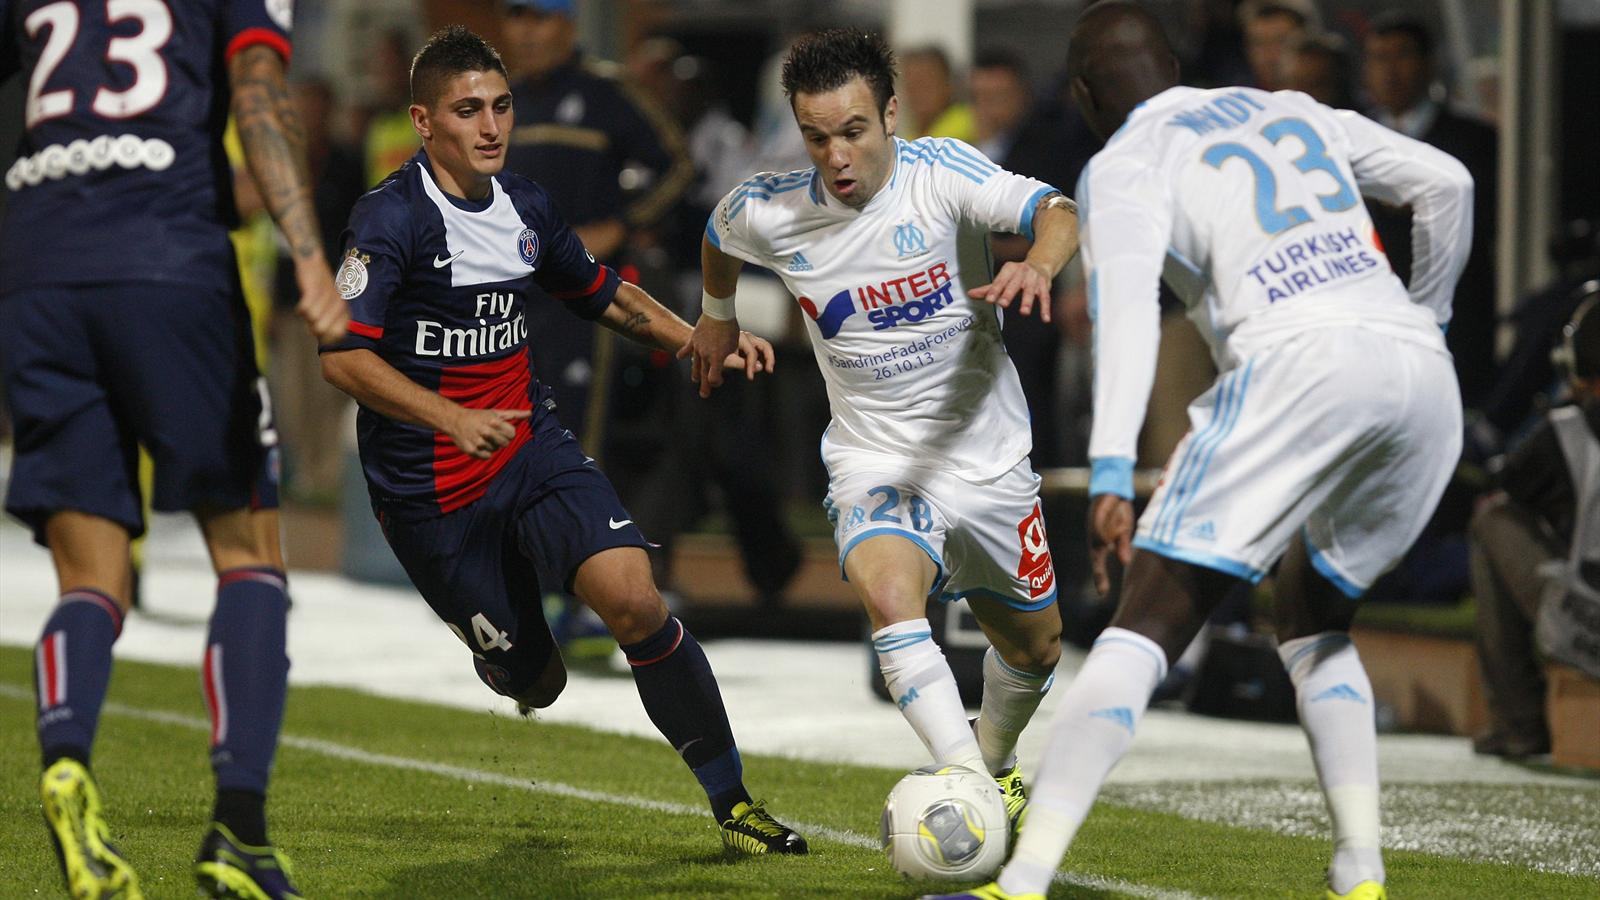 PSG - OM: Match Paris Saint-Germain vs Olympique de Marseille en direct live streaming